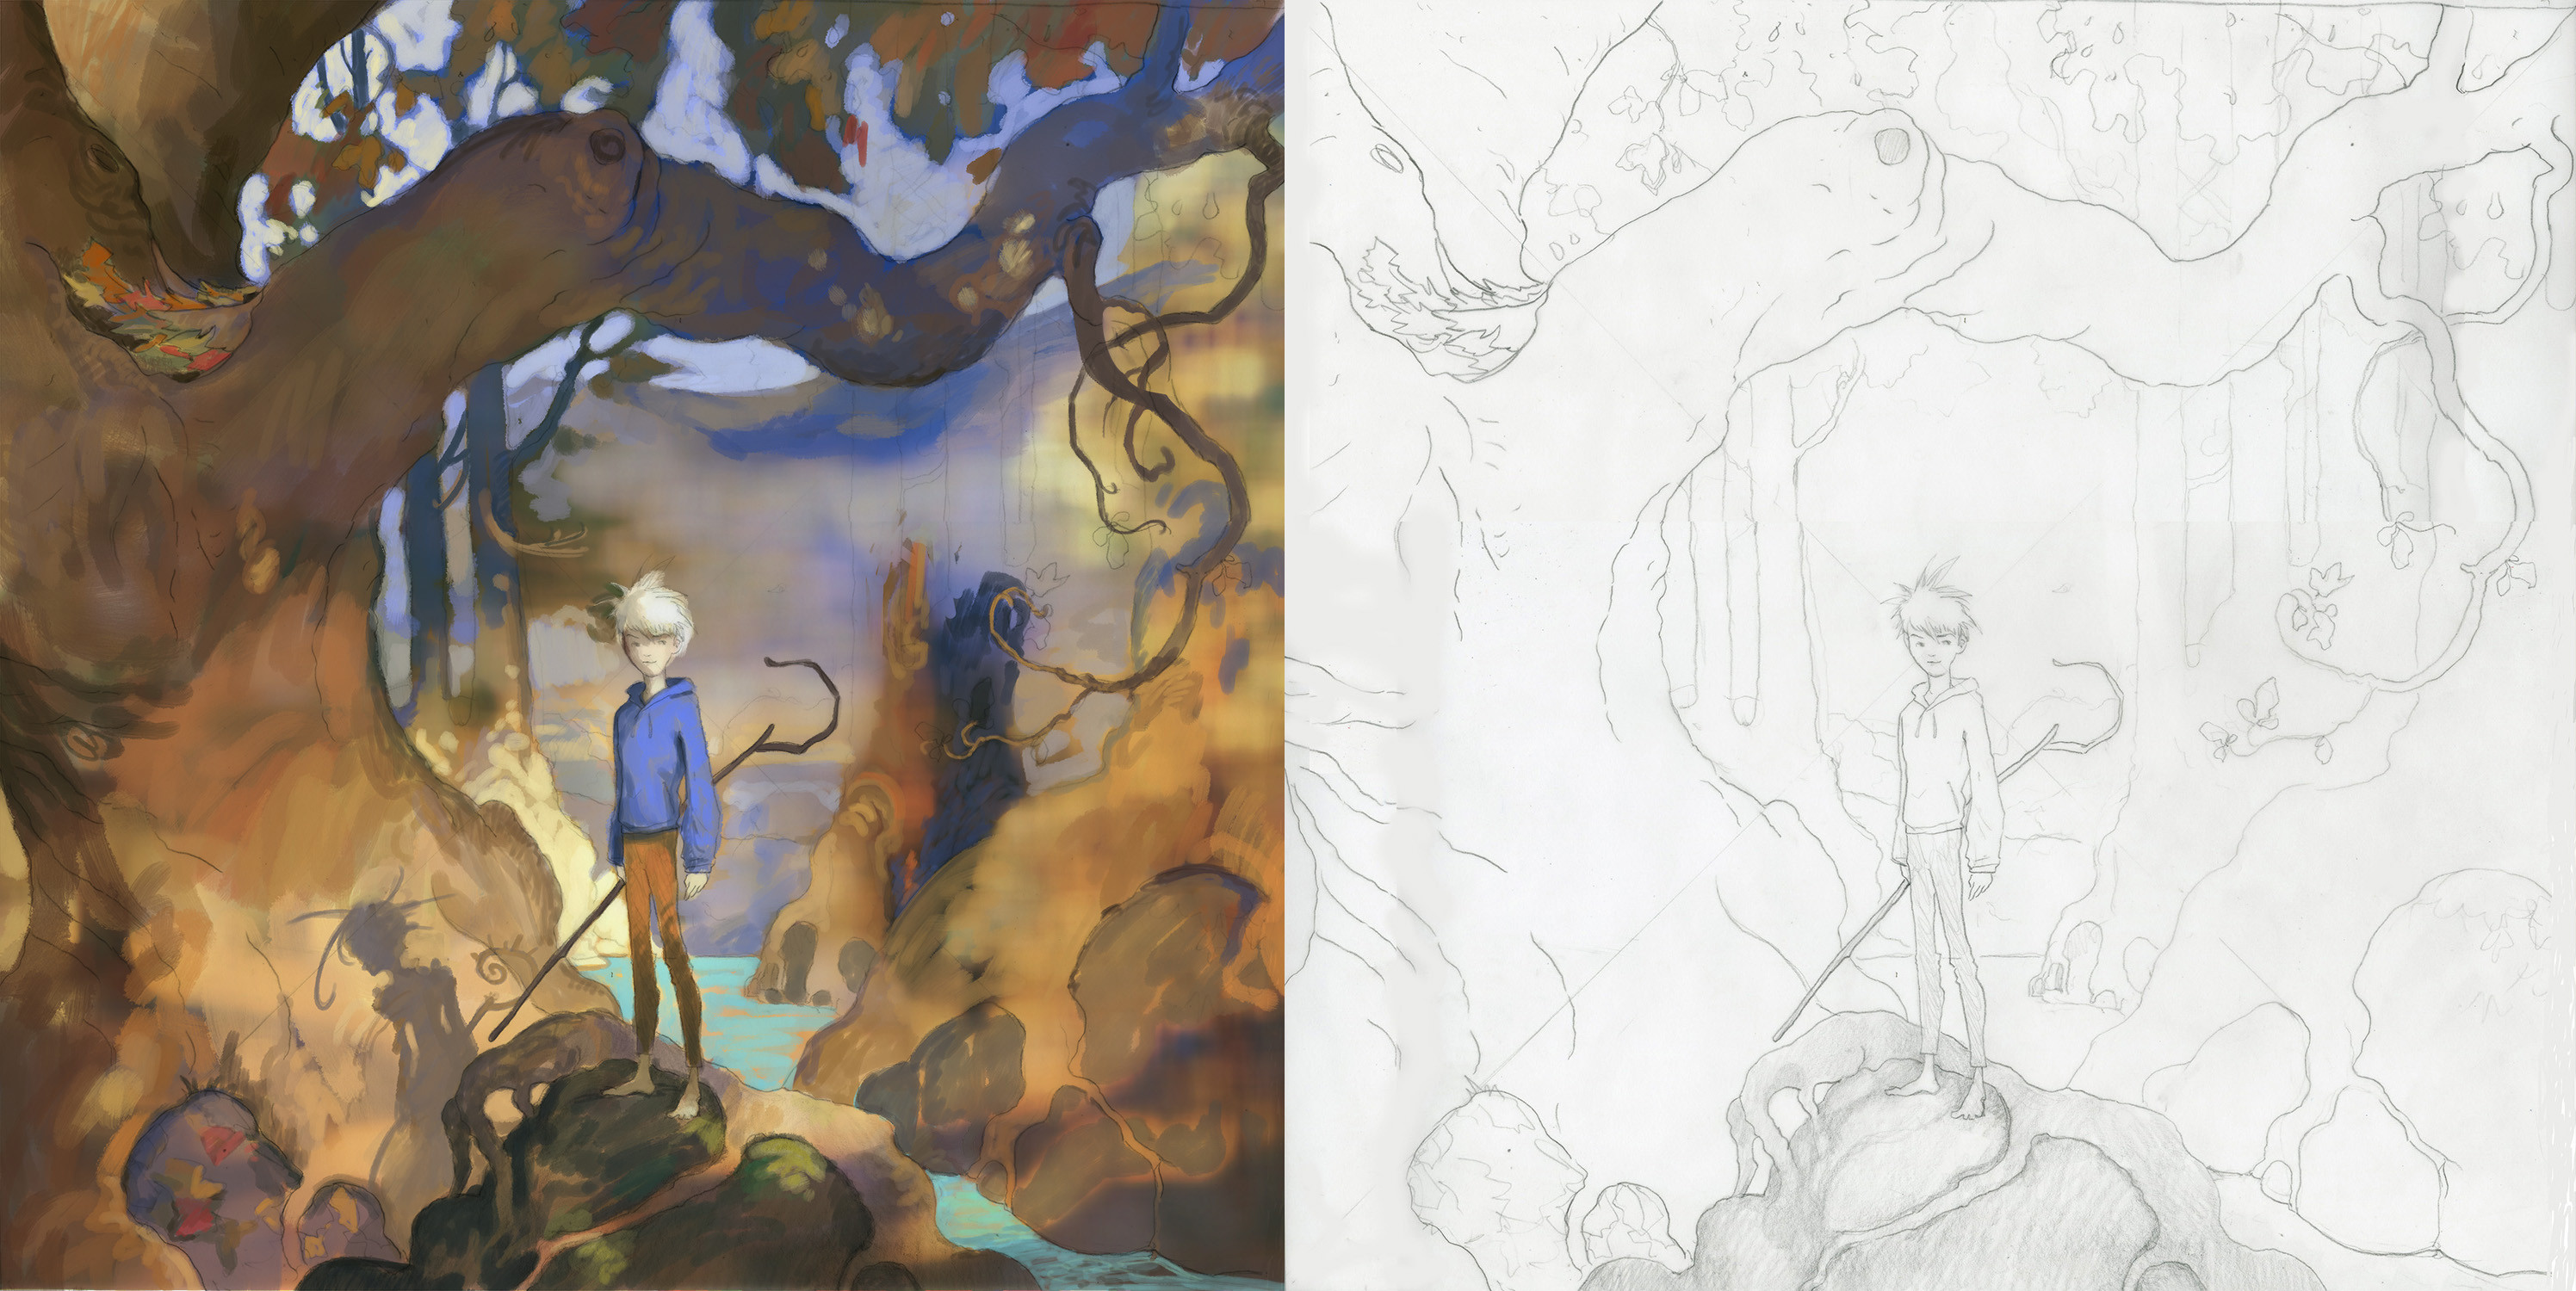 William's sketch on the right. My WIP paint job on the left.